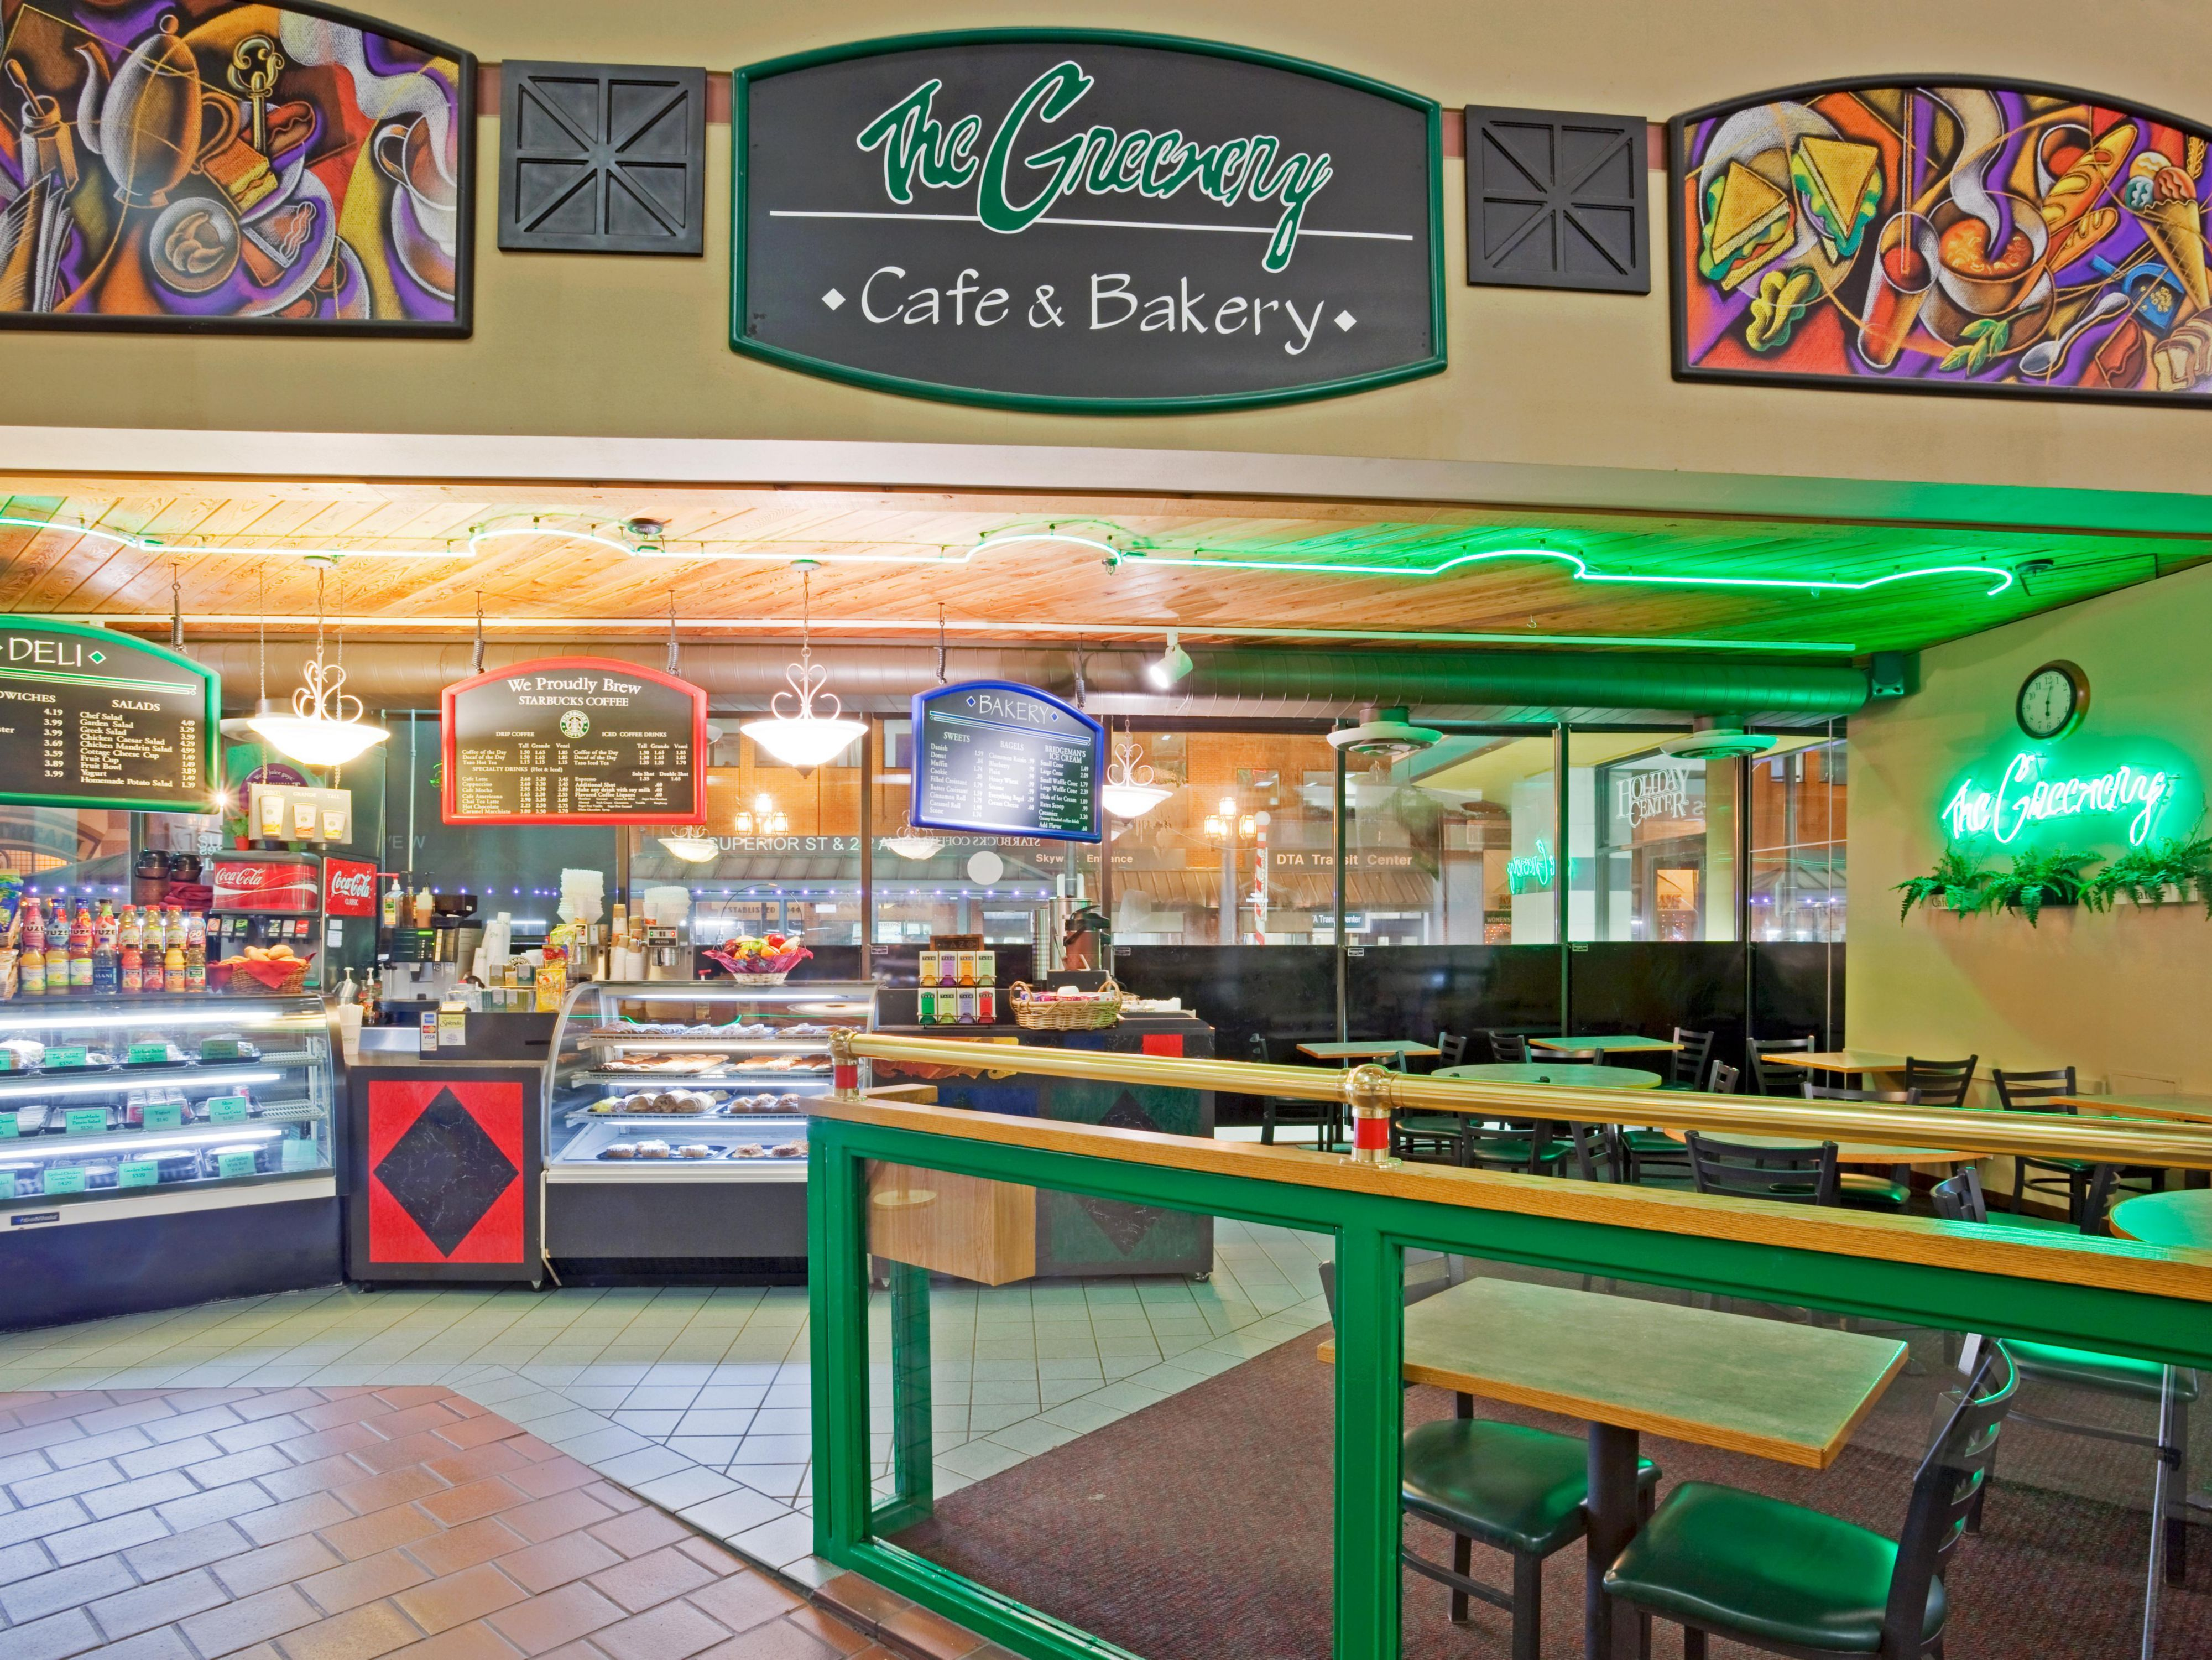 Get something to go at The Greenery Cafe & Bakery